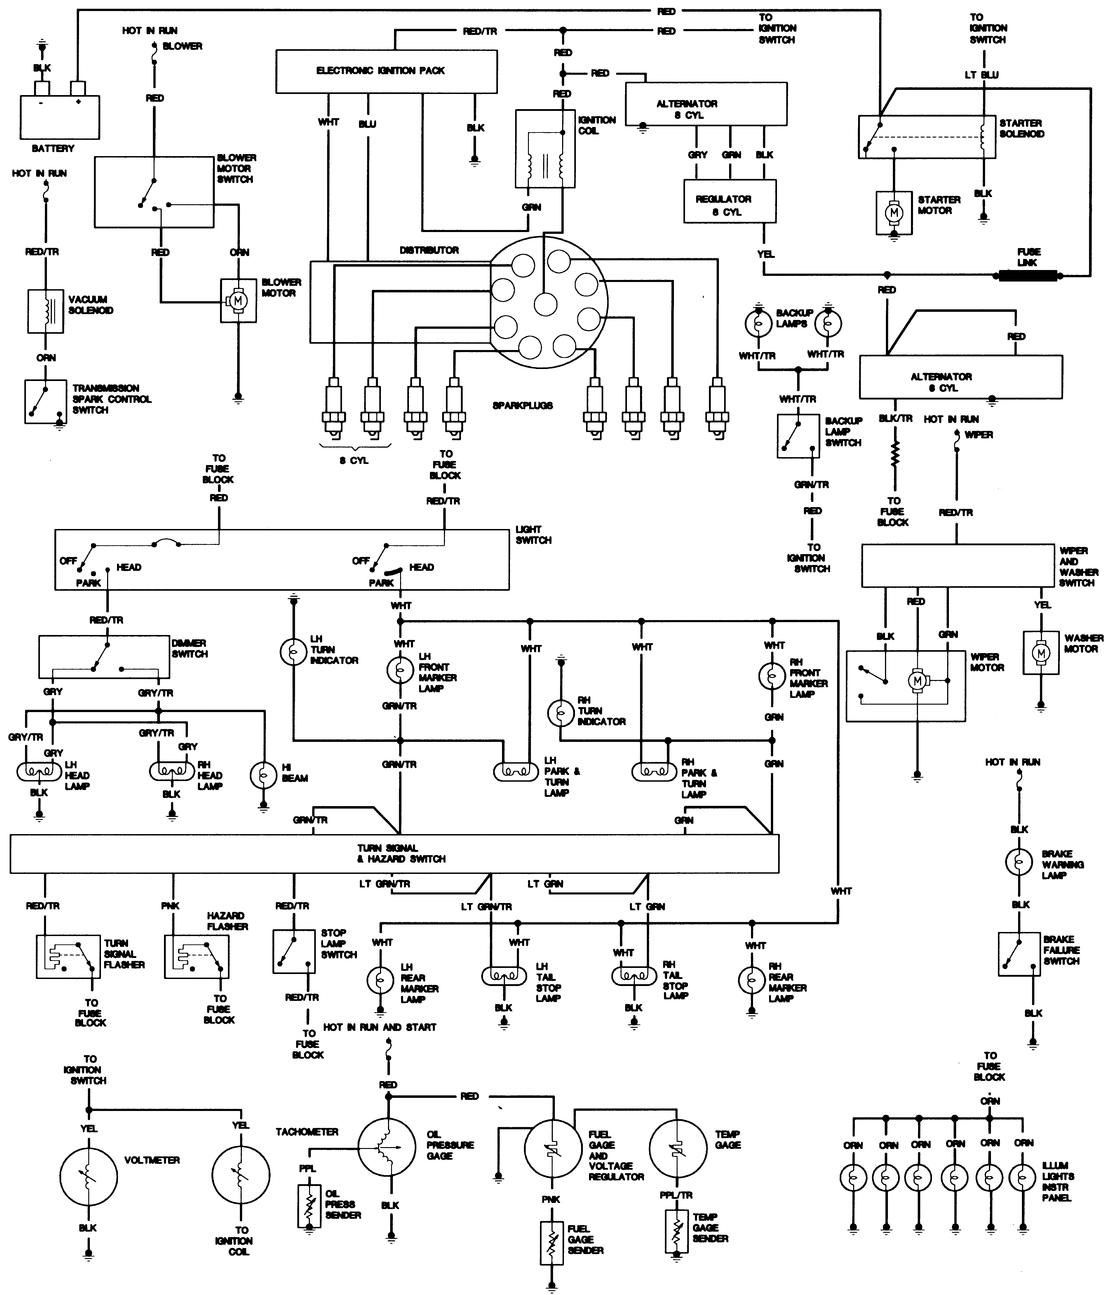 Jeep Cj7 Wiring Diagram